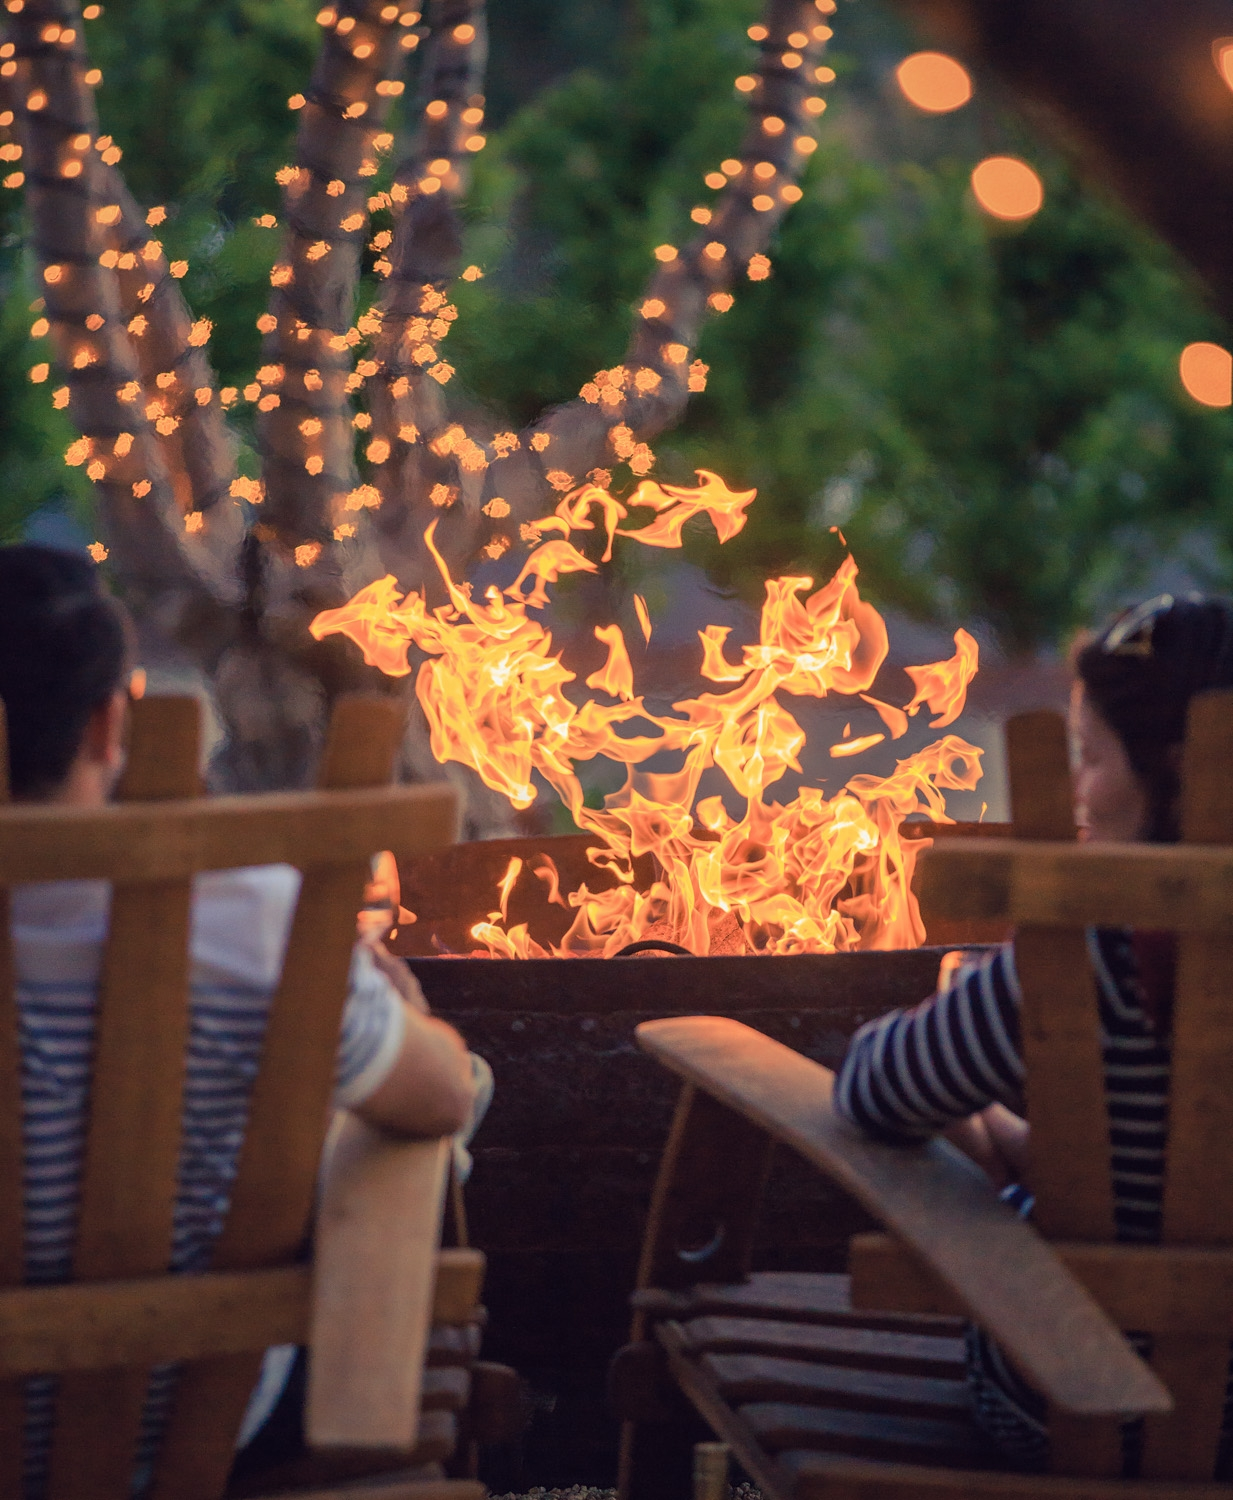 A man and woman sitting in wooden lounge chairs facing the fire